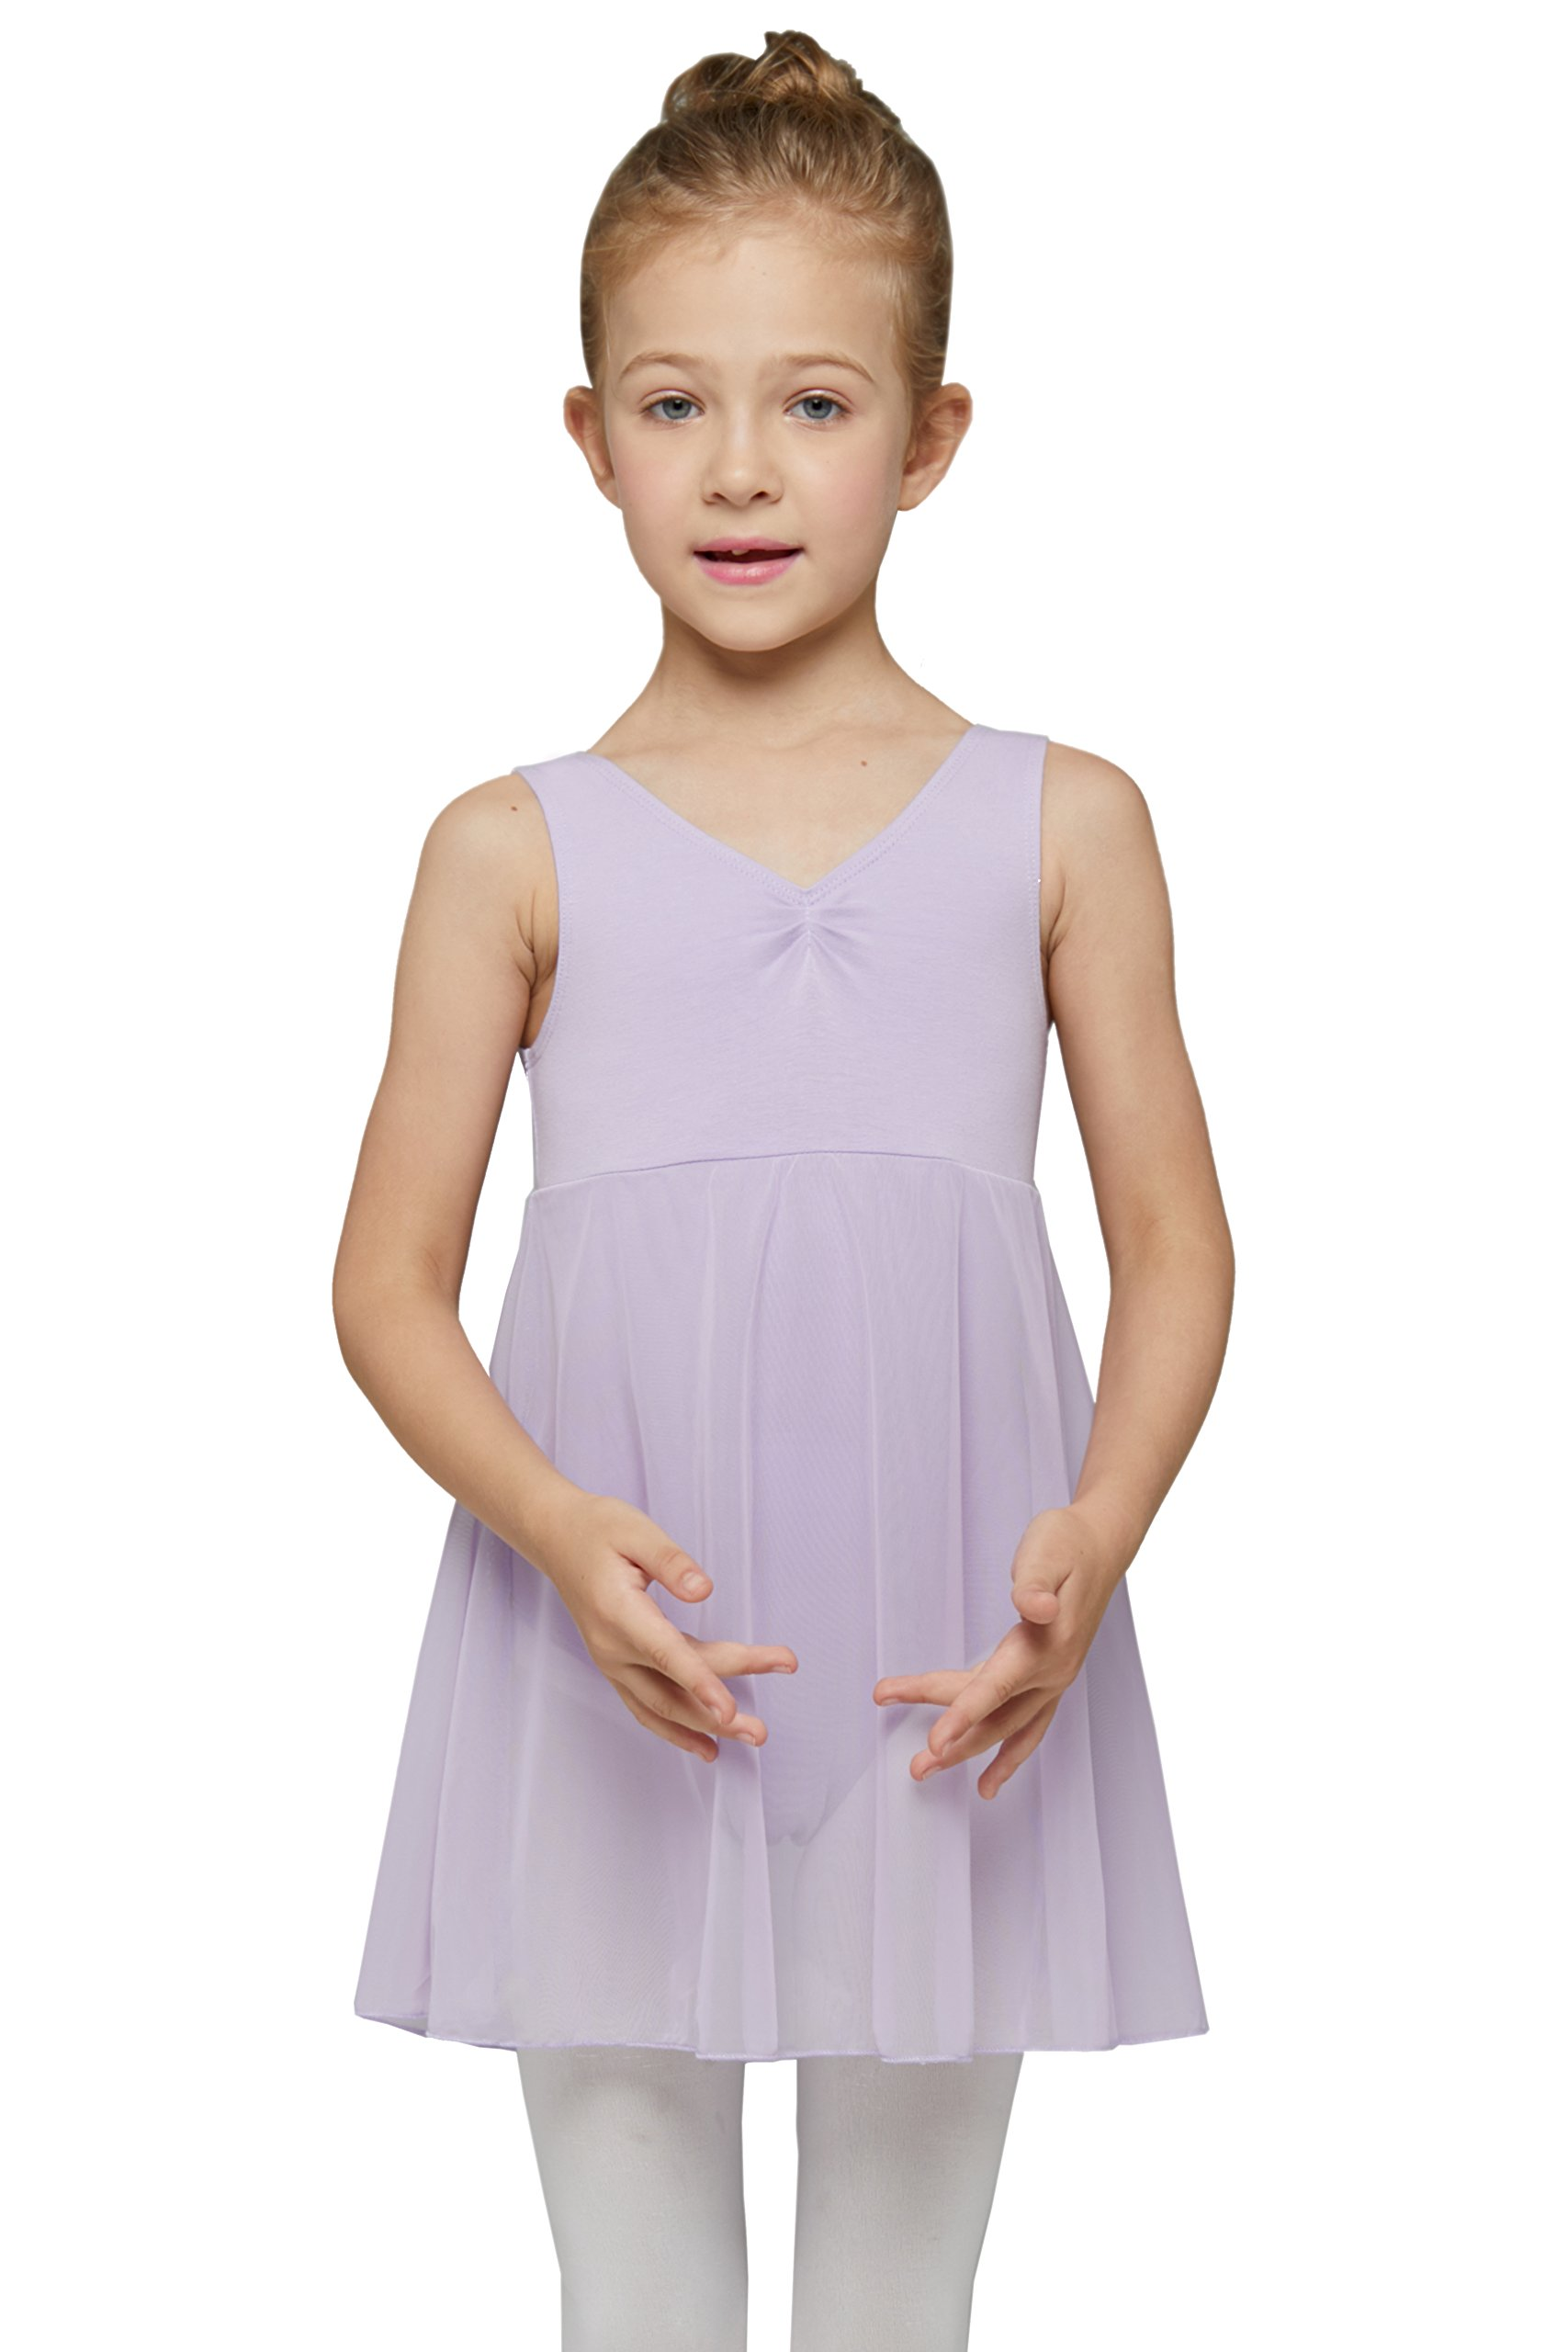 Dance Leotard with Skirt for Girls by Mdnmd (Tag 120) Age 4-6, Purple)